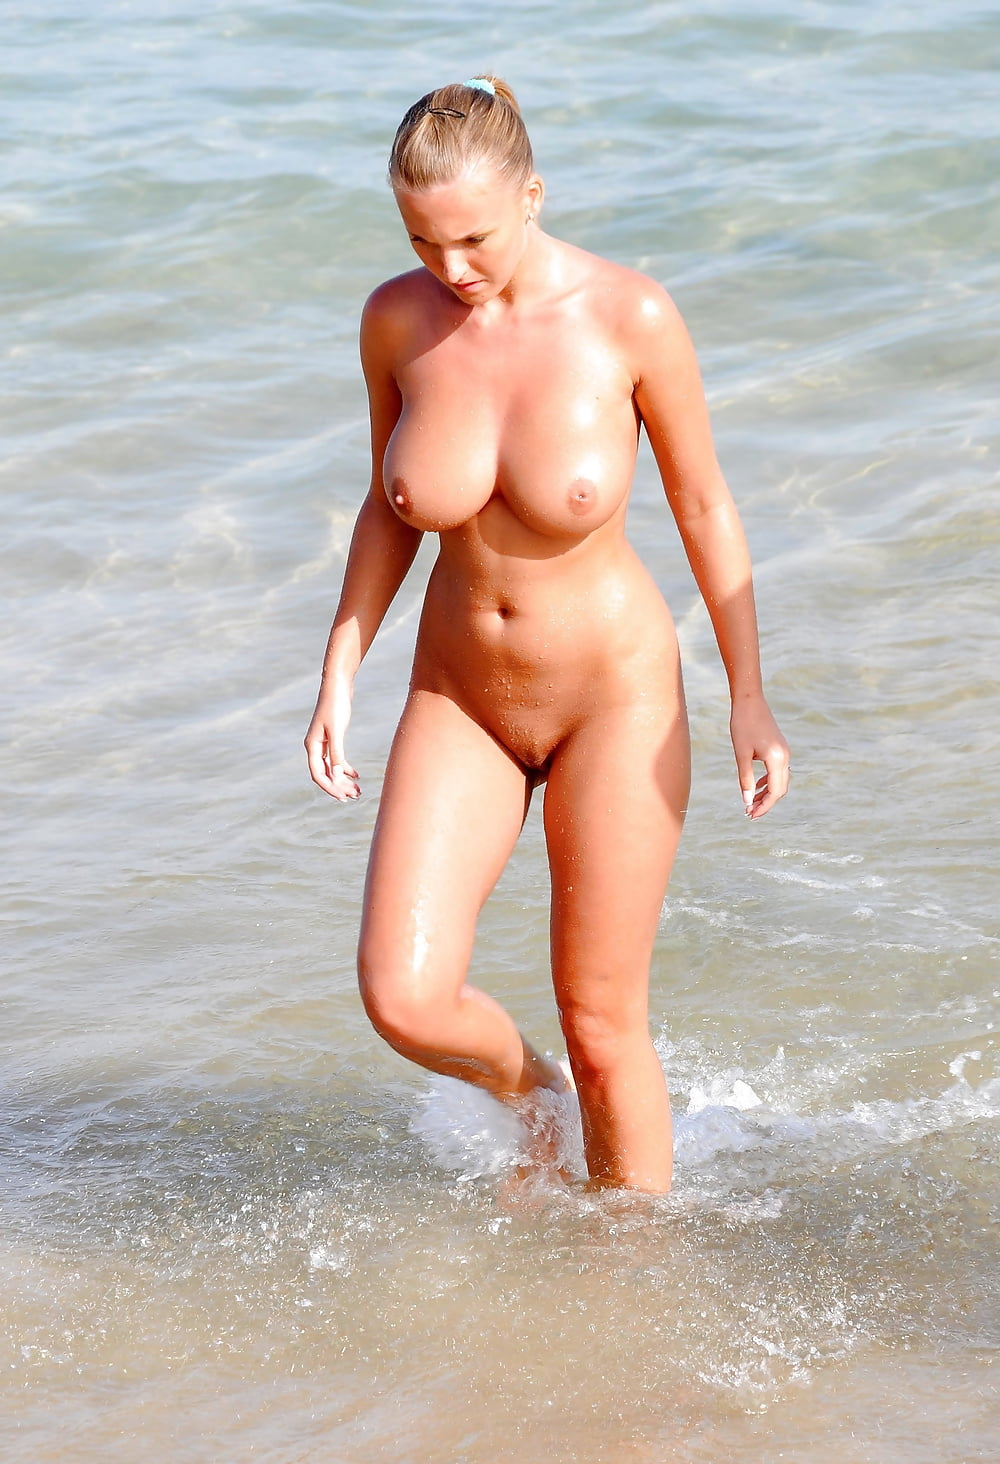 The bachelor's noni janur shows off her ample curves in a nude bikini